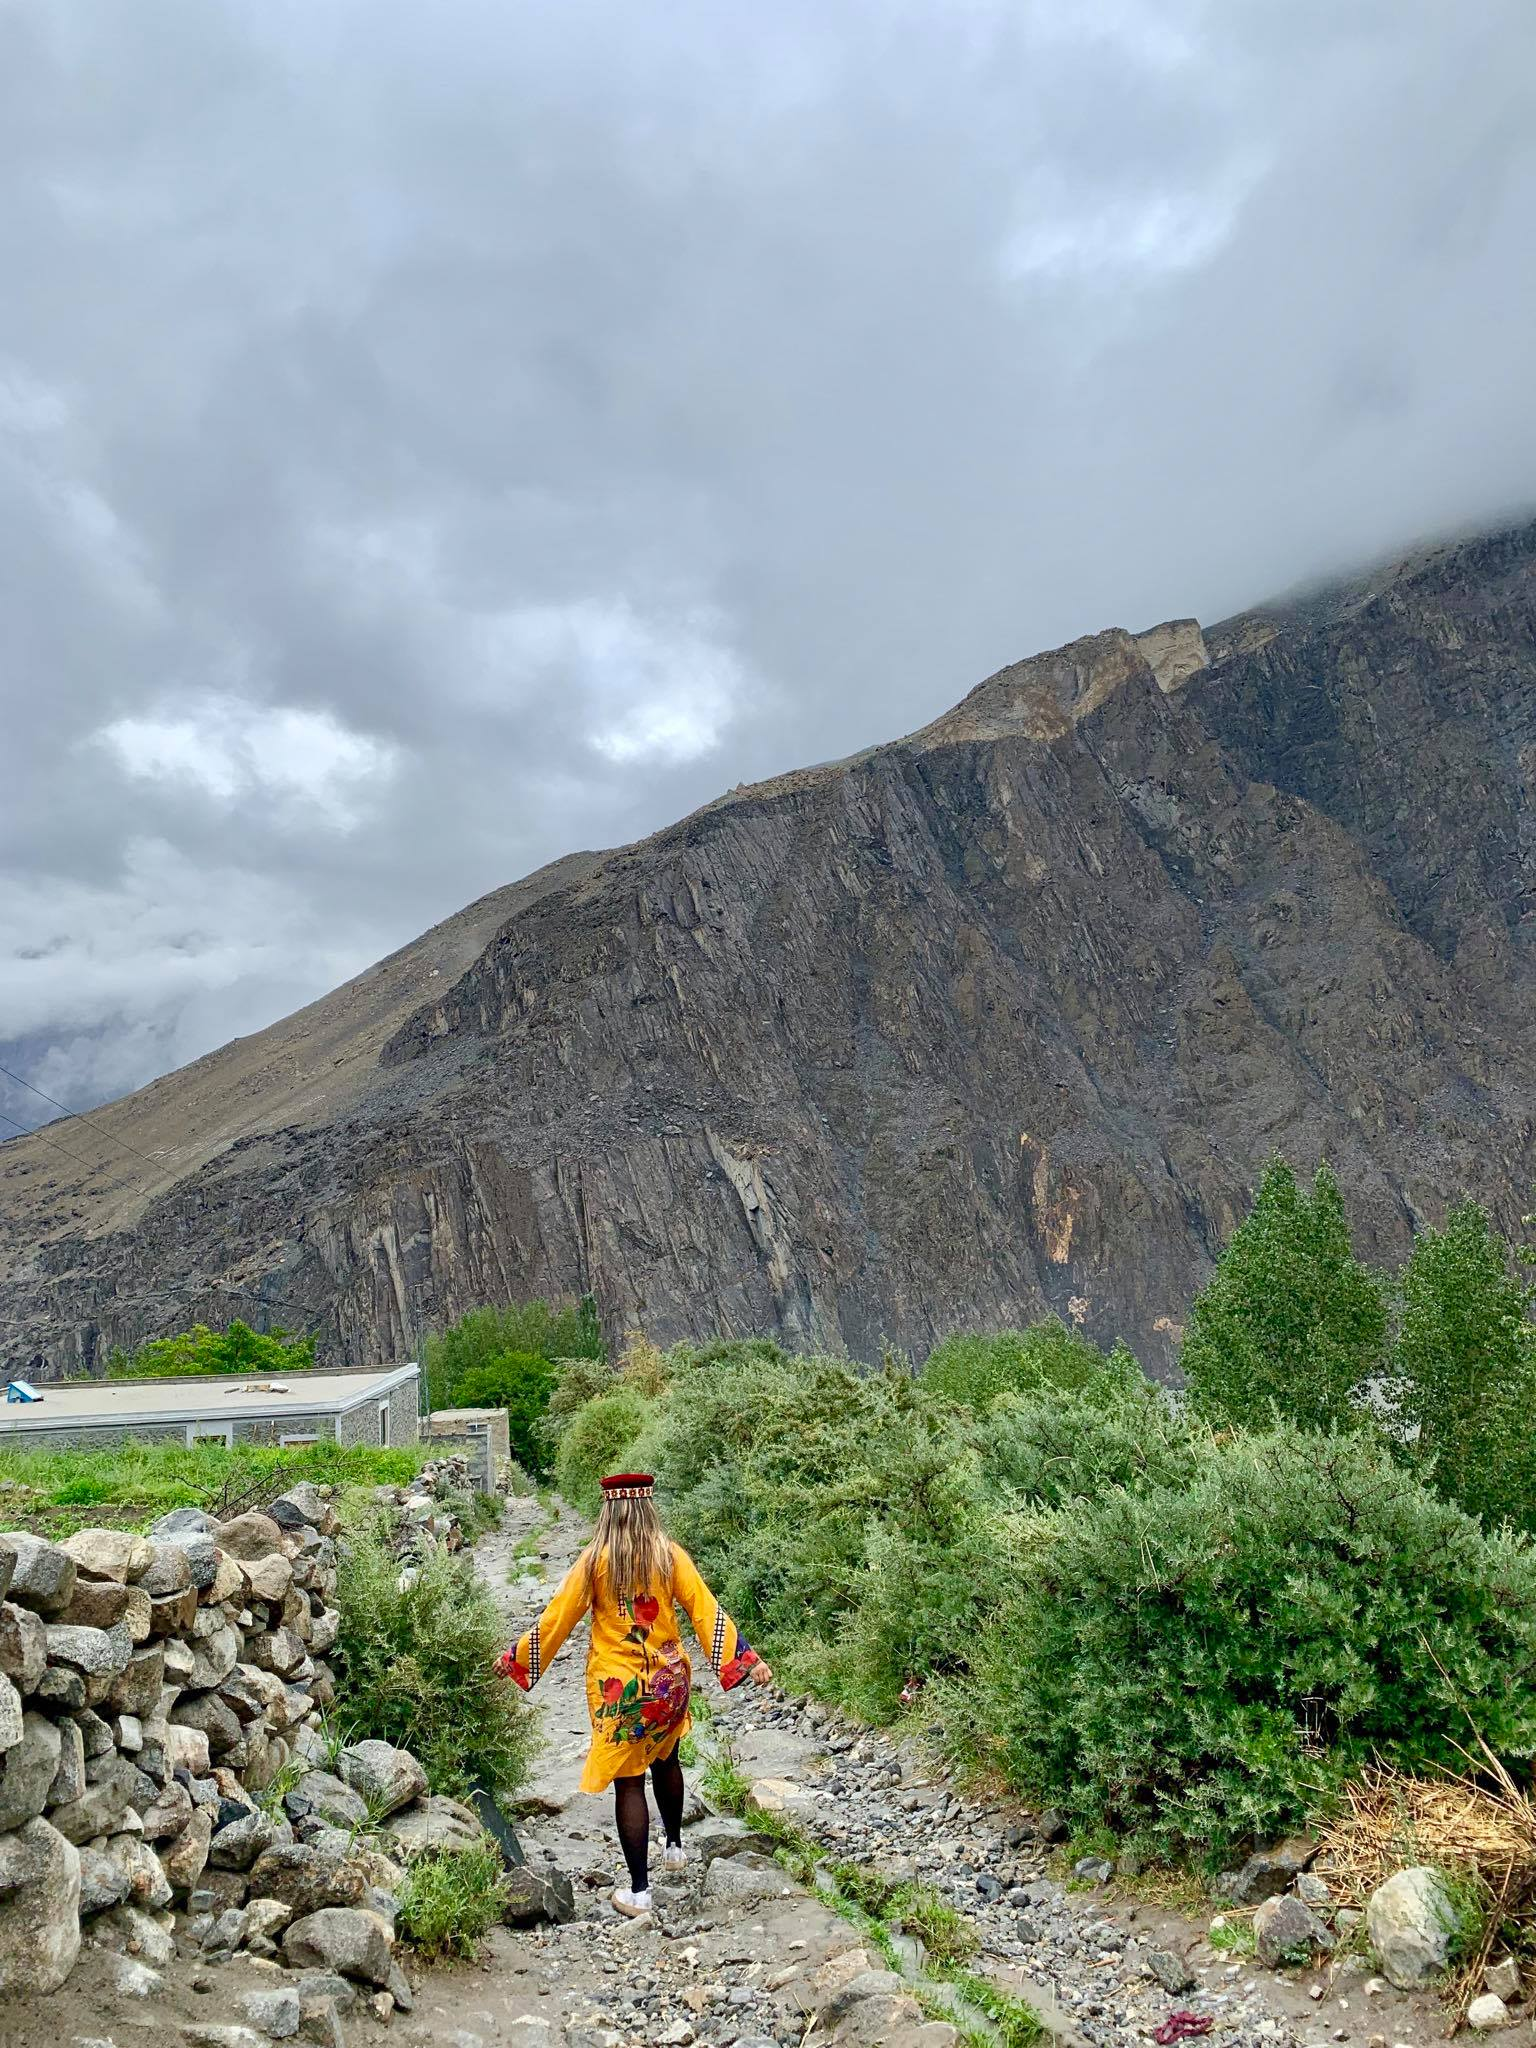 Kach Solo Travels in 2019 Driving in North Hunza Valley to Khunjerab Pass35.jpg